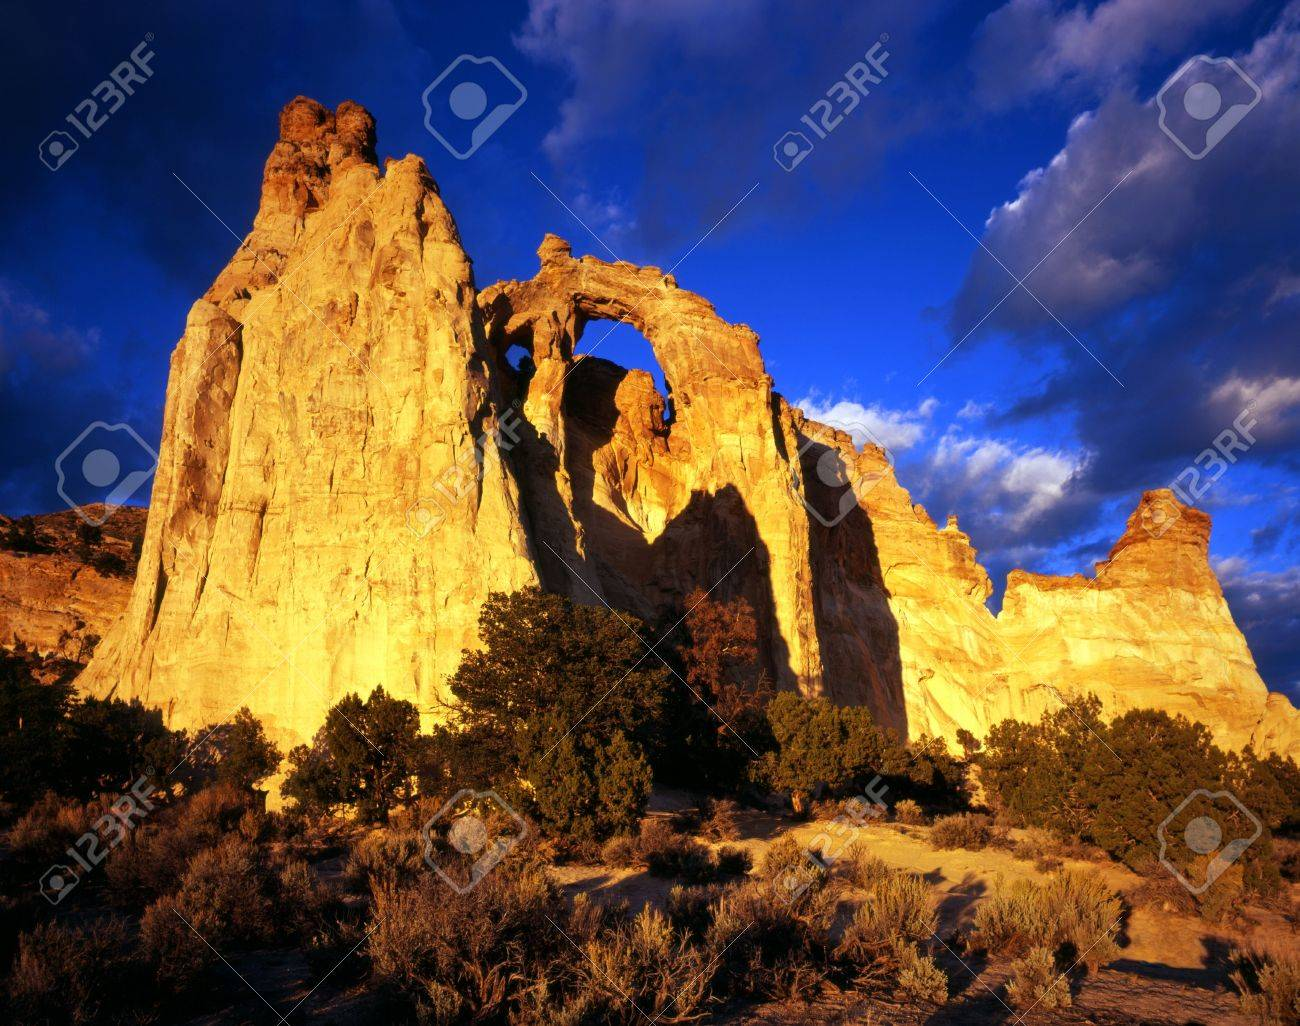 A double stone arch in the Grand Staircase-Esclante National Monument, Utah. Stock Photo - 2103588